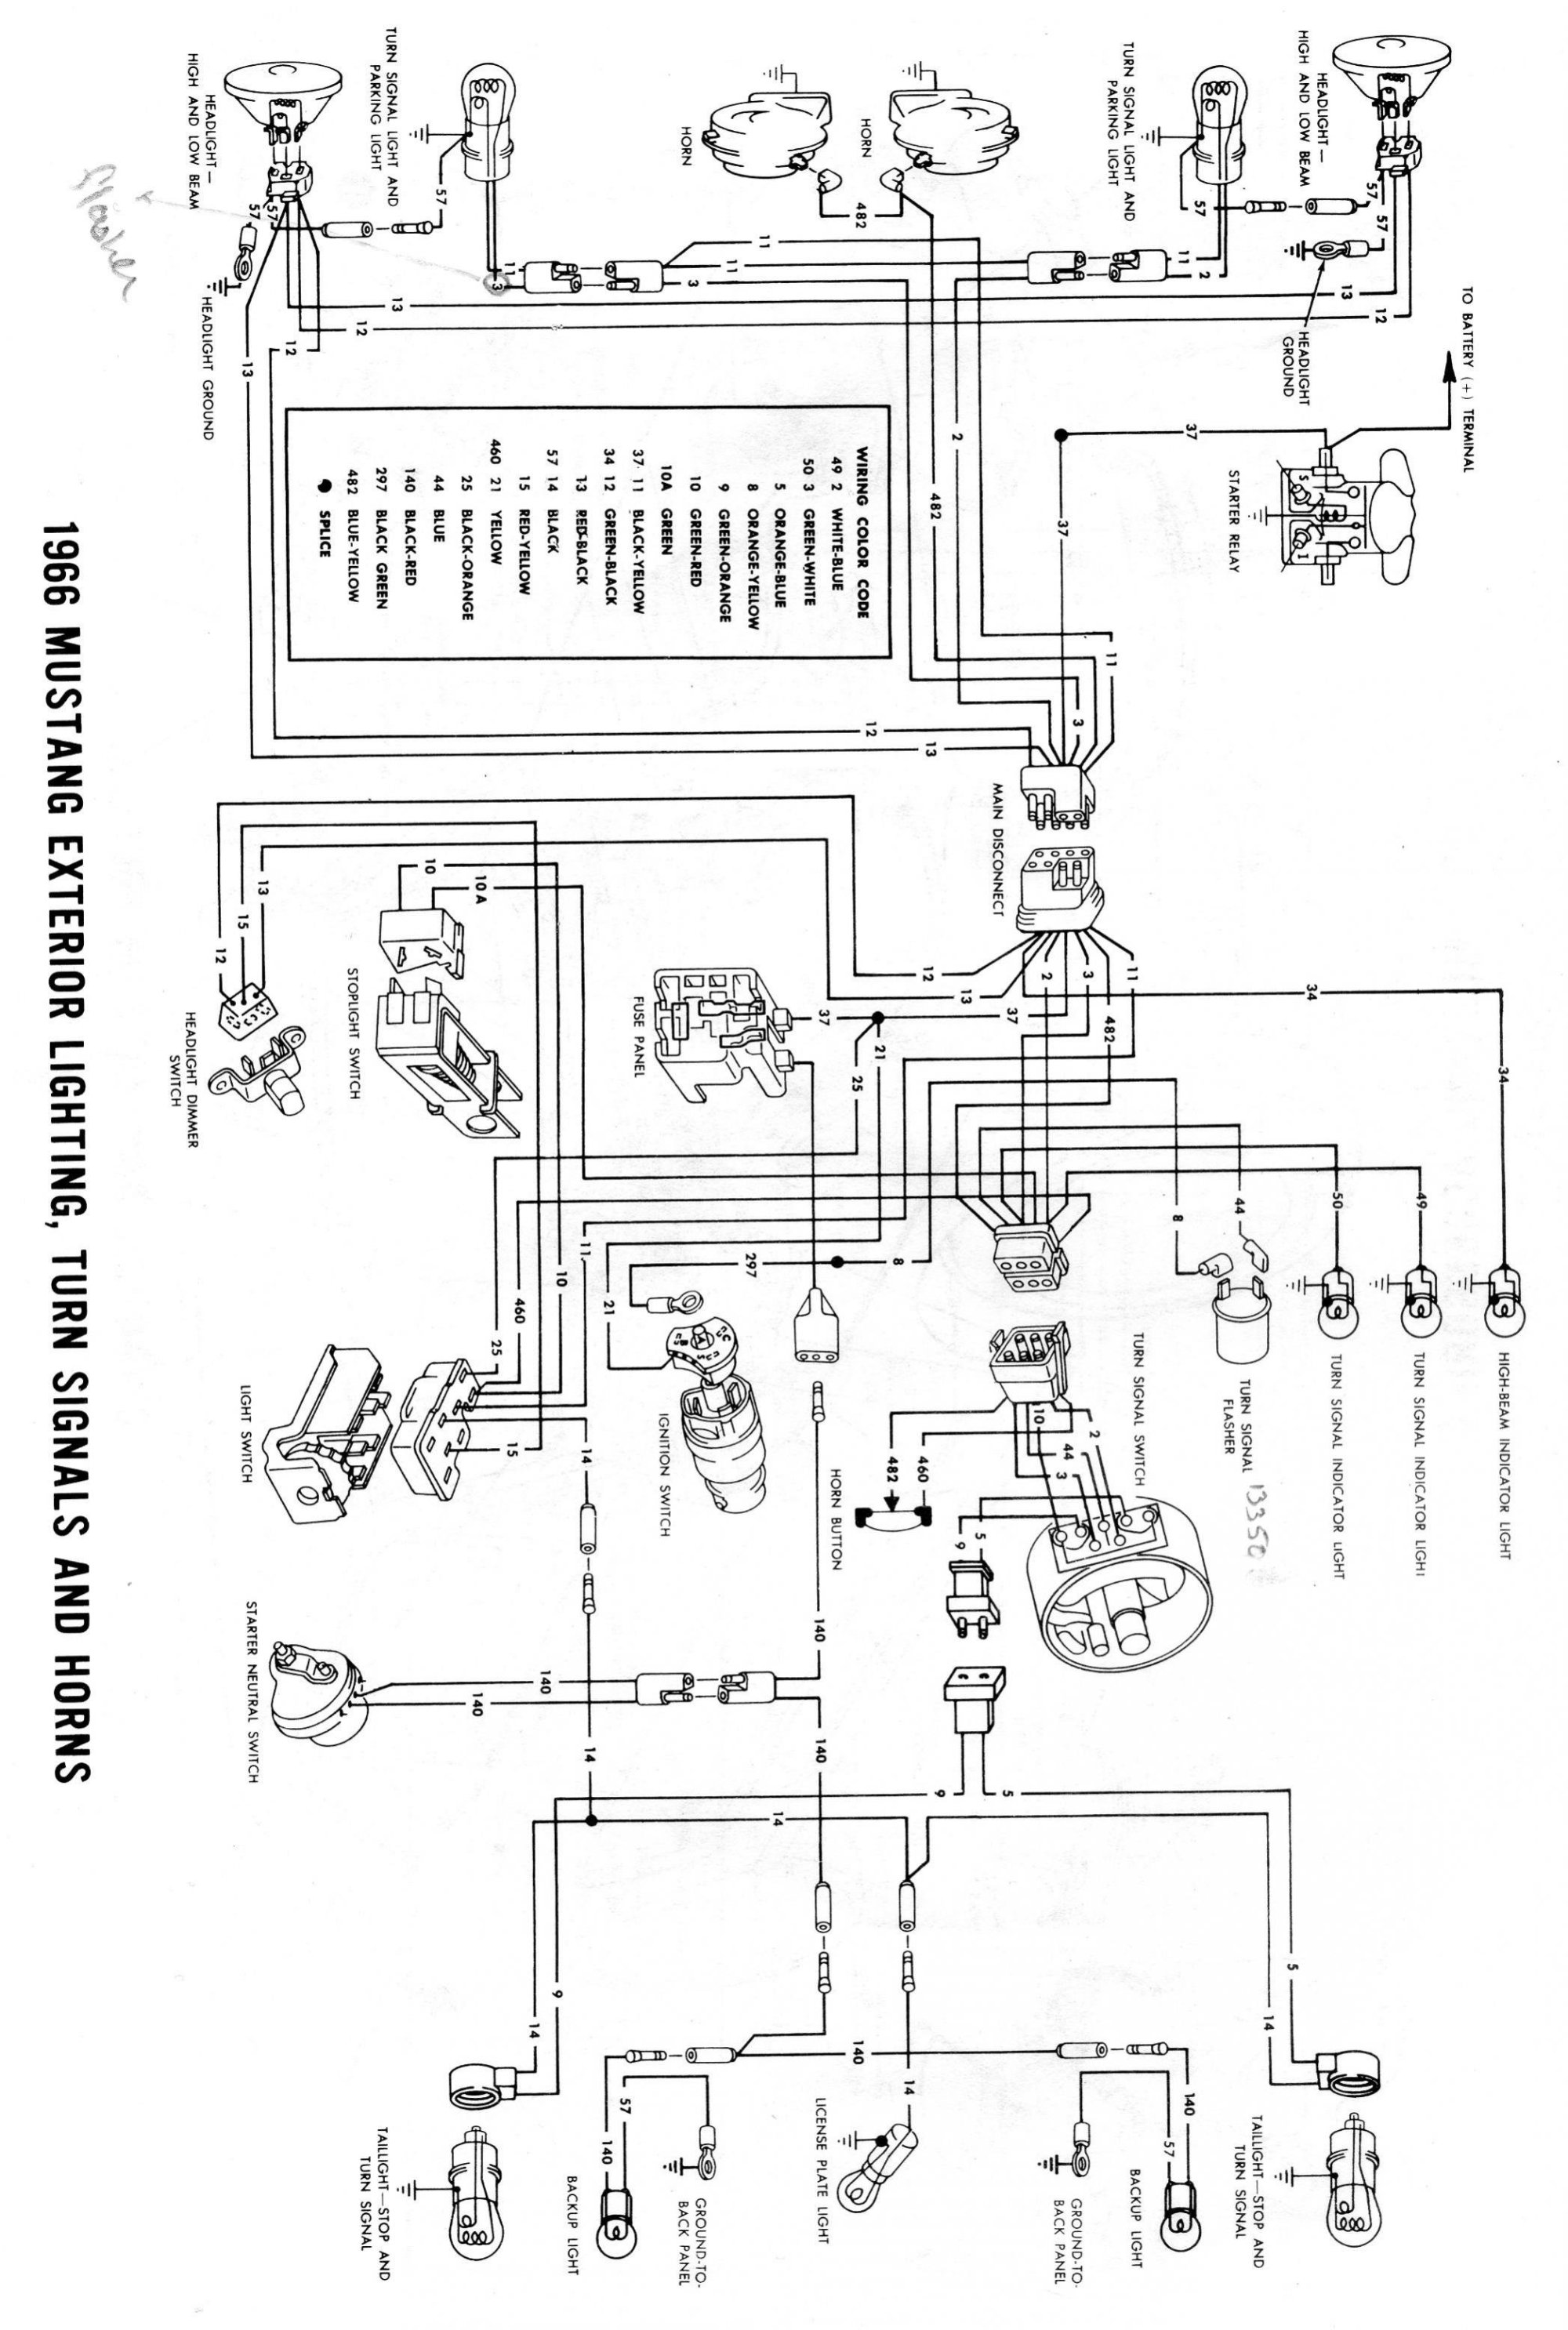 hight resolution of 1972 ford turn signal wiring wiring diagram used 1972 ford turn signal wiring wire management